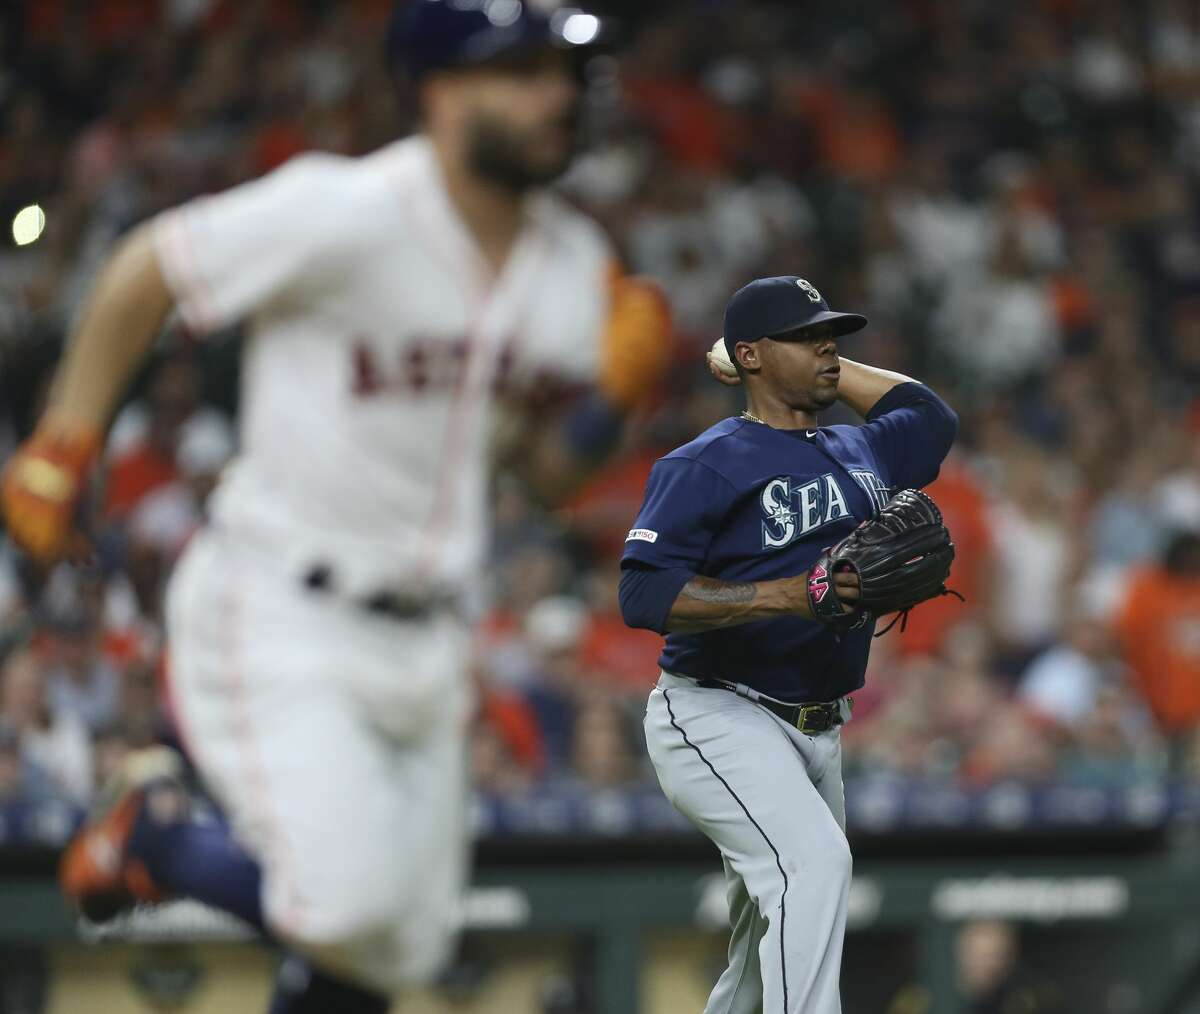 Houston Astros second baseman Jose Altuve (27) grounds out to Seattle Mariners starting pitcher Roenis Elias (55) during bottom ninth inning of the MLB game at Minute Maid Park on Saturday, June 29, 2019, in Houston.